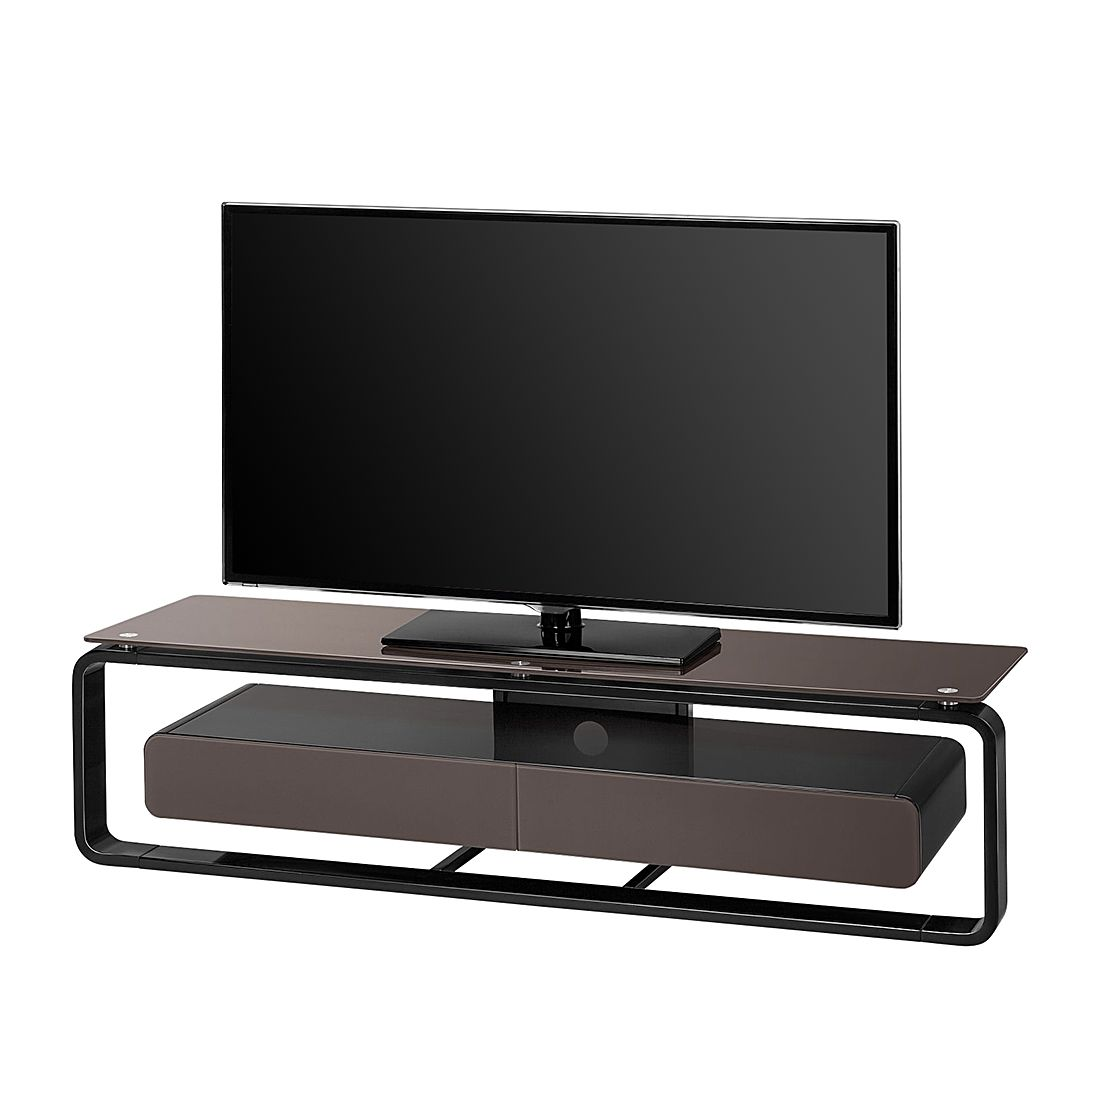 tv rack glas preis vergleich 2016. Black Bedroom Furniture Sets. Home Design Ideas